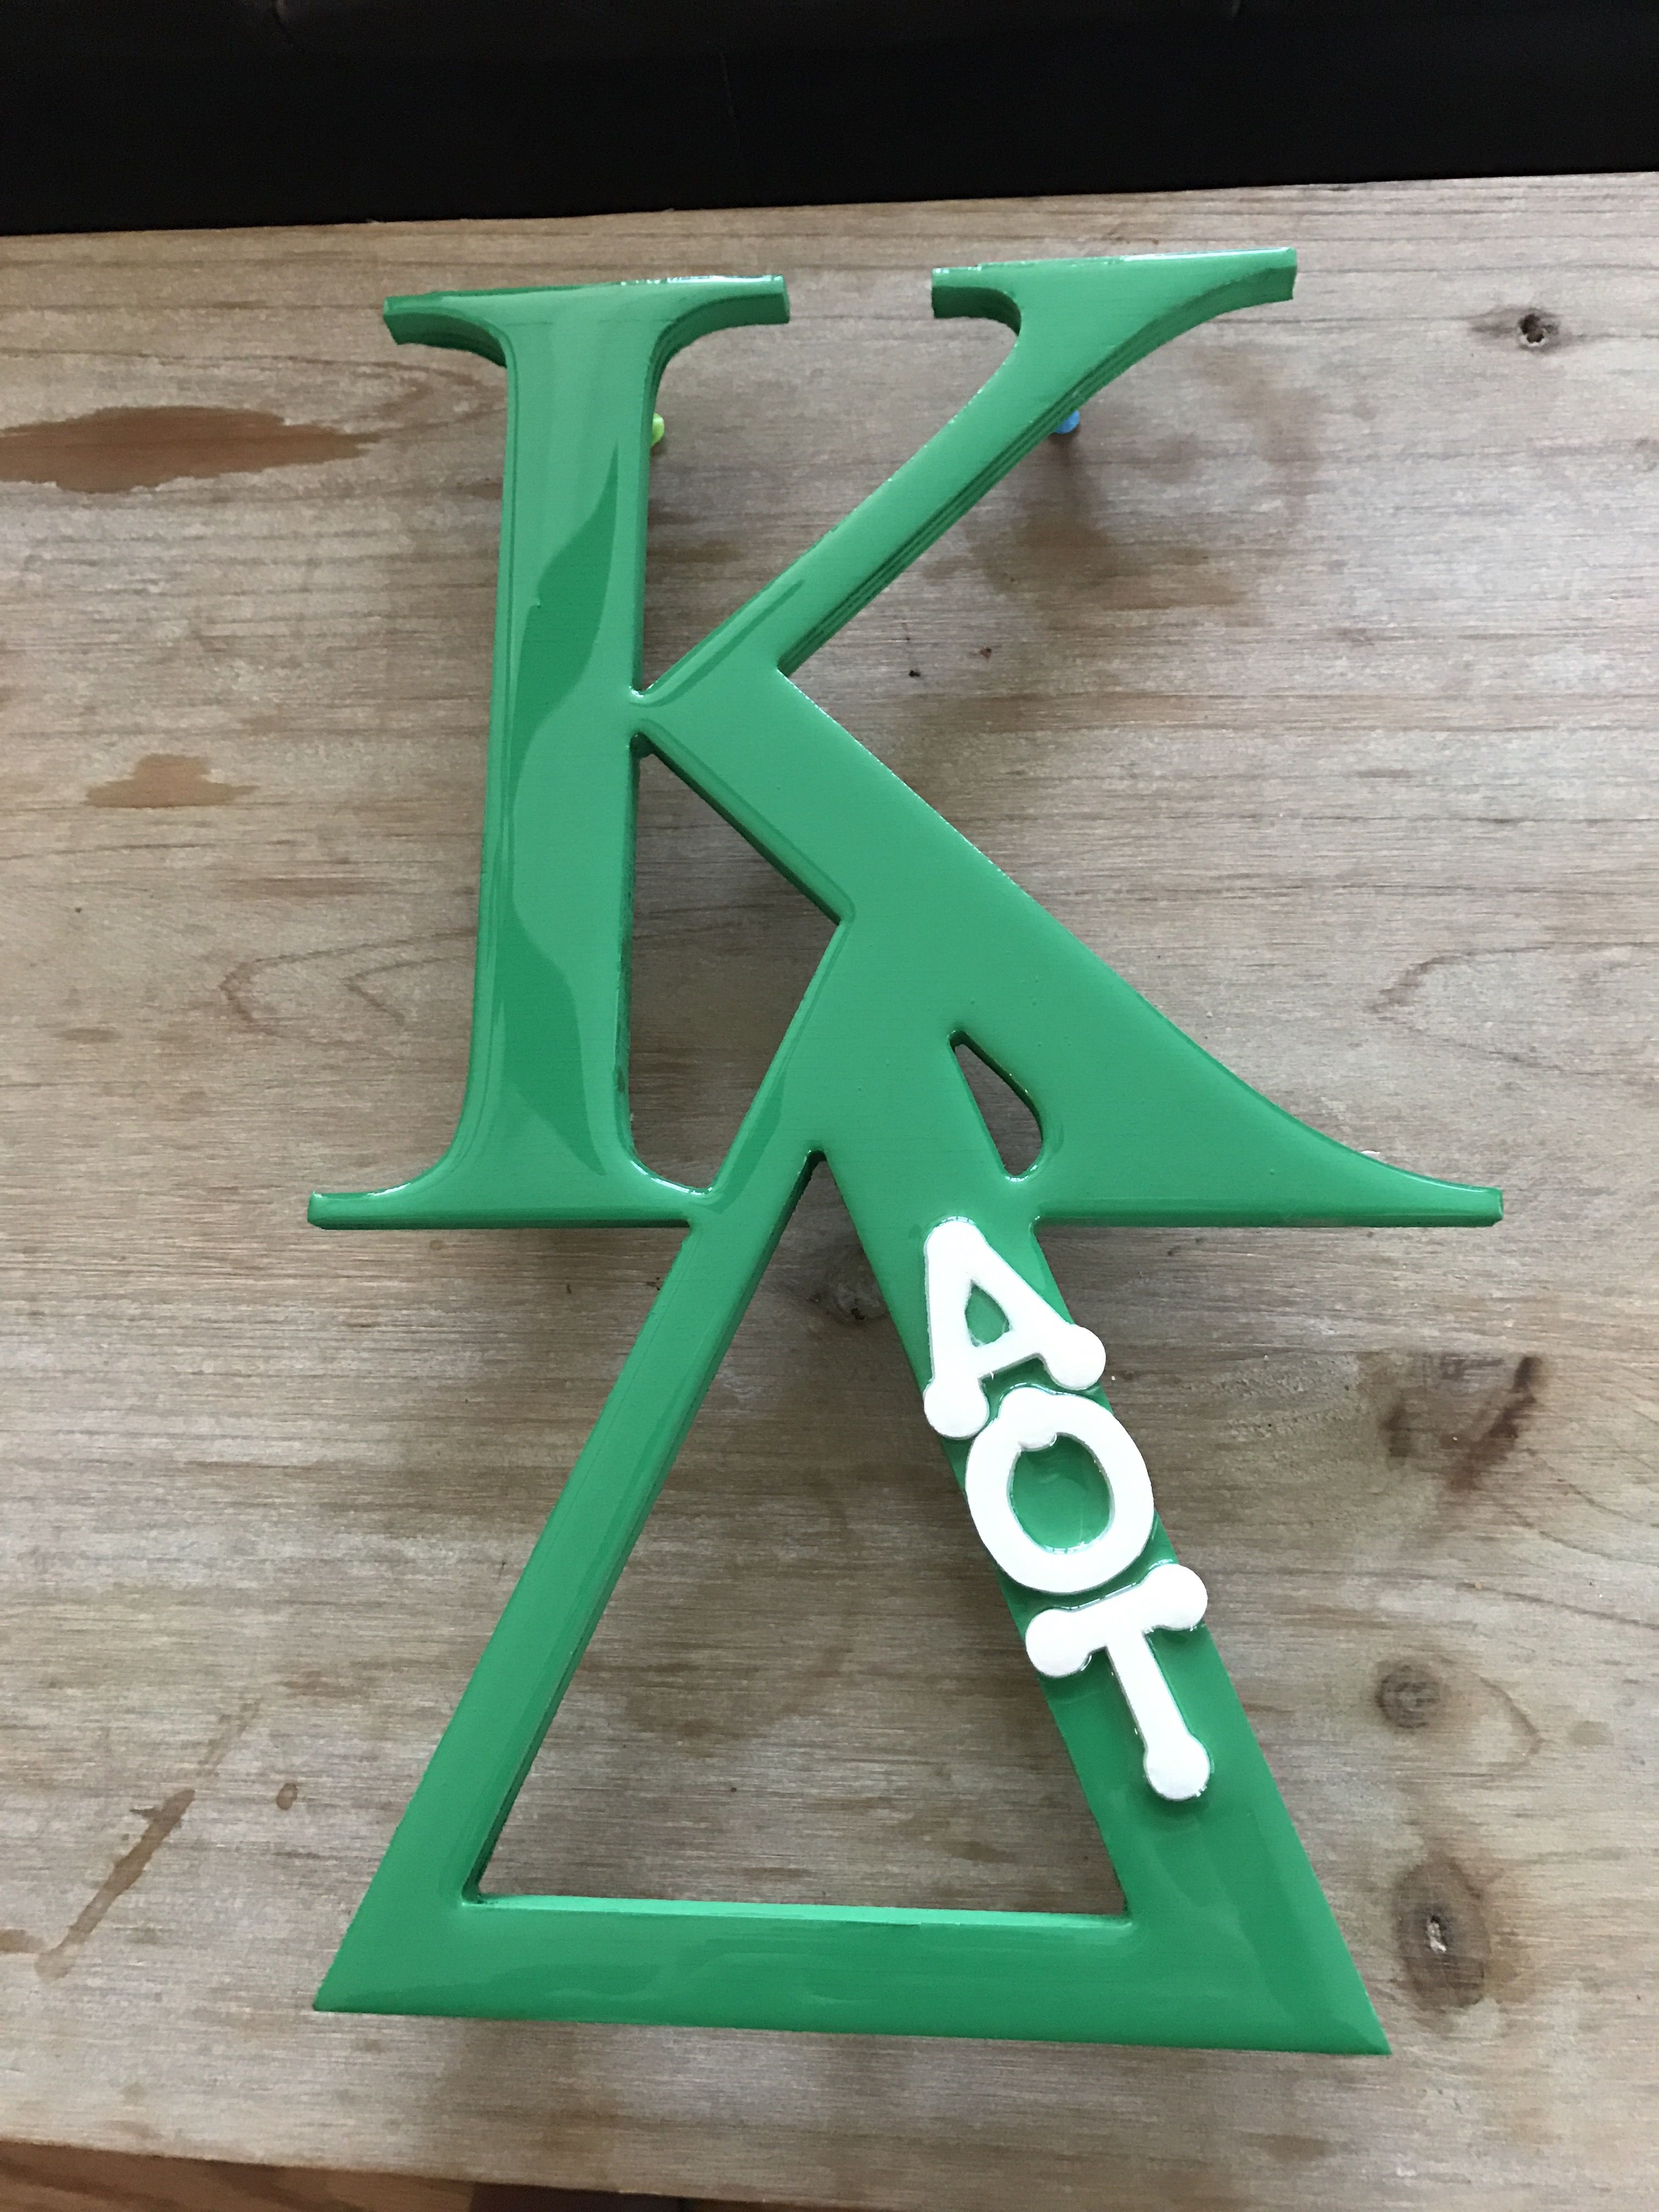 arkansaskd kappadeltahq kappa delta customized letters wood piece from chucks paint in stillwater